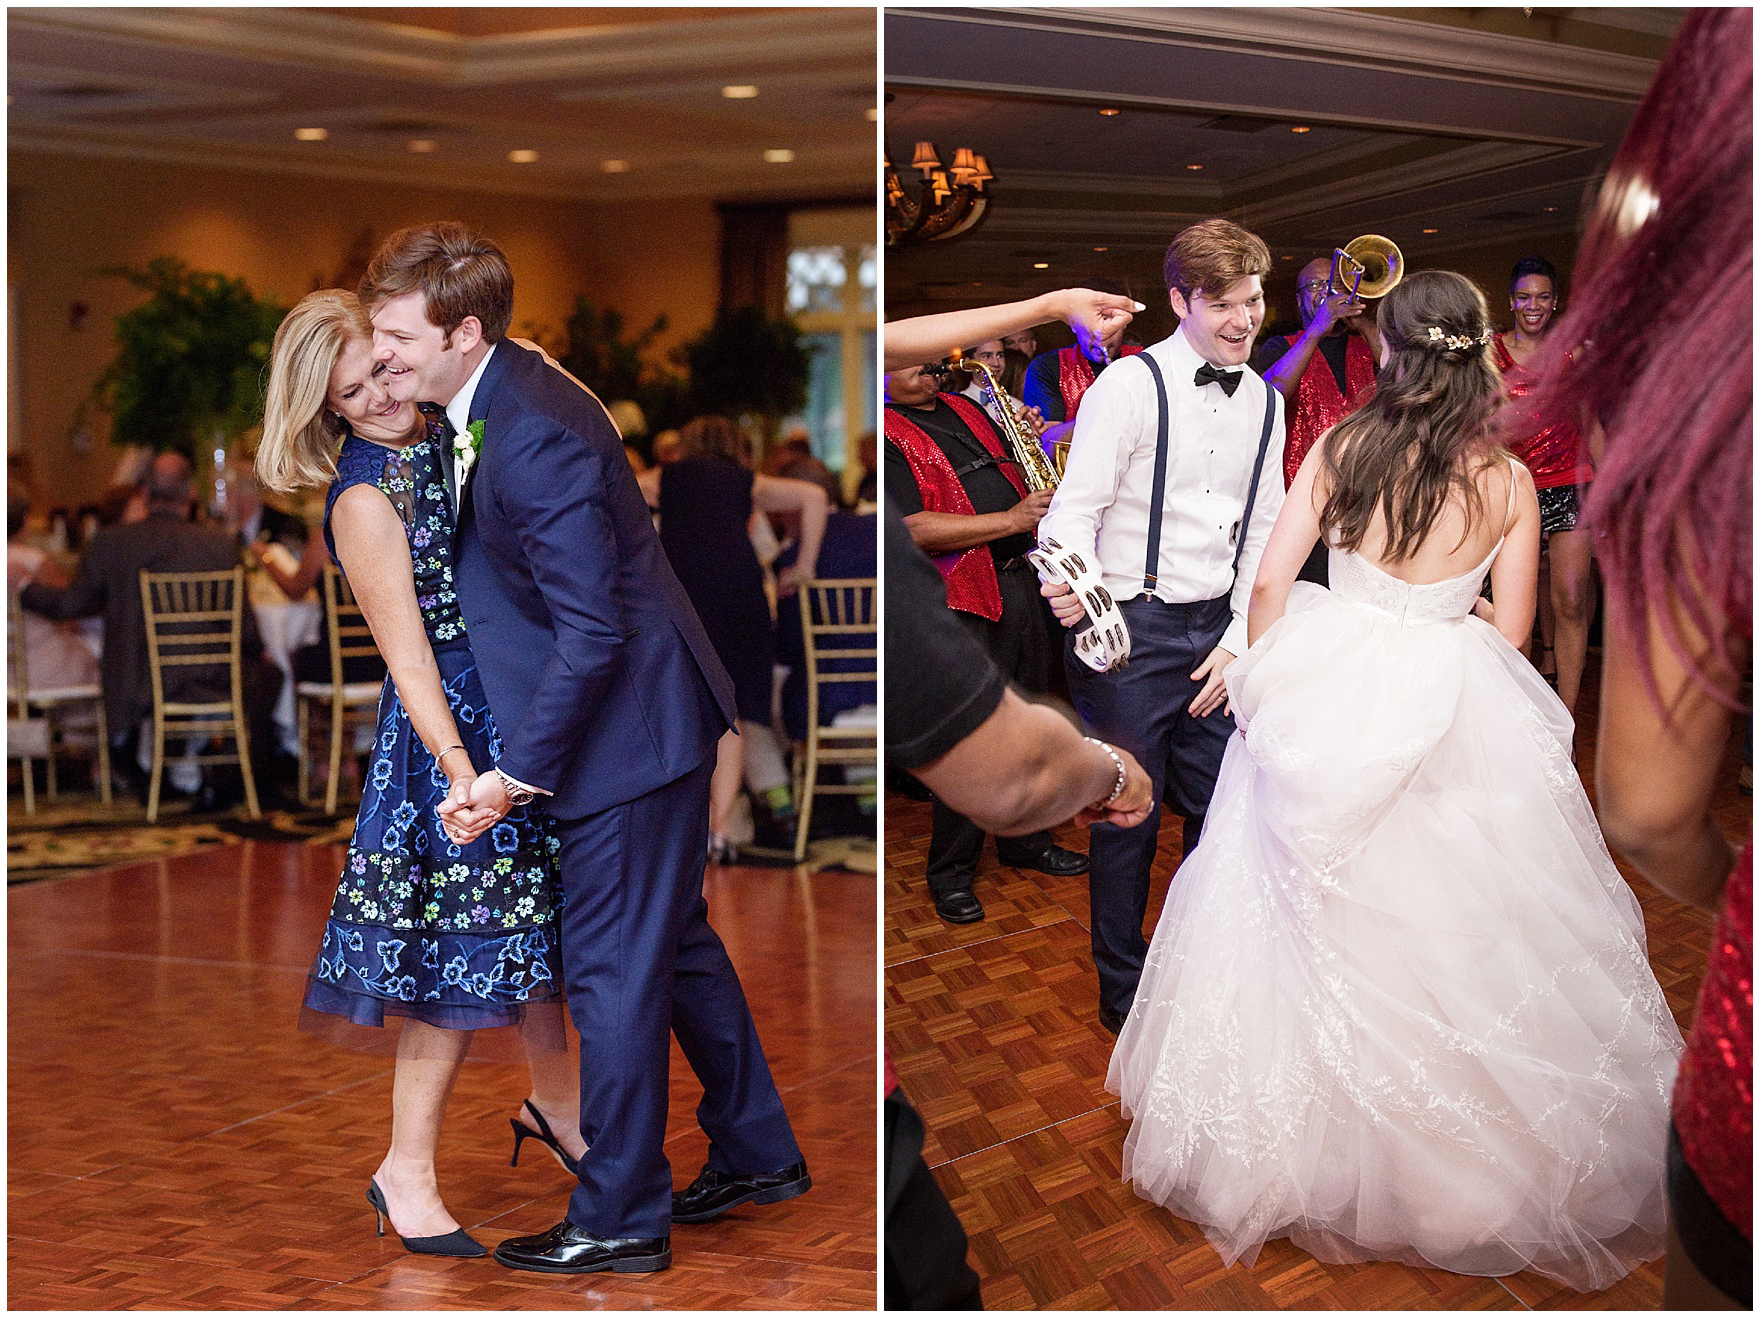 The groom dances with his mother at a Butterfield Country Club wedding.